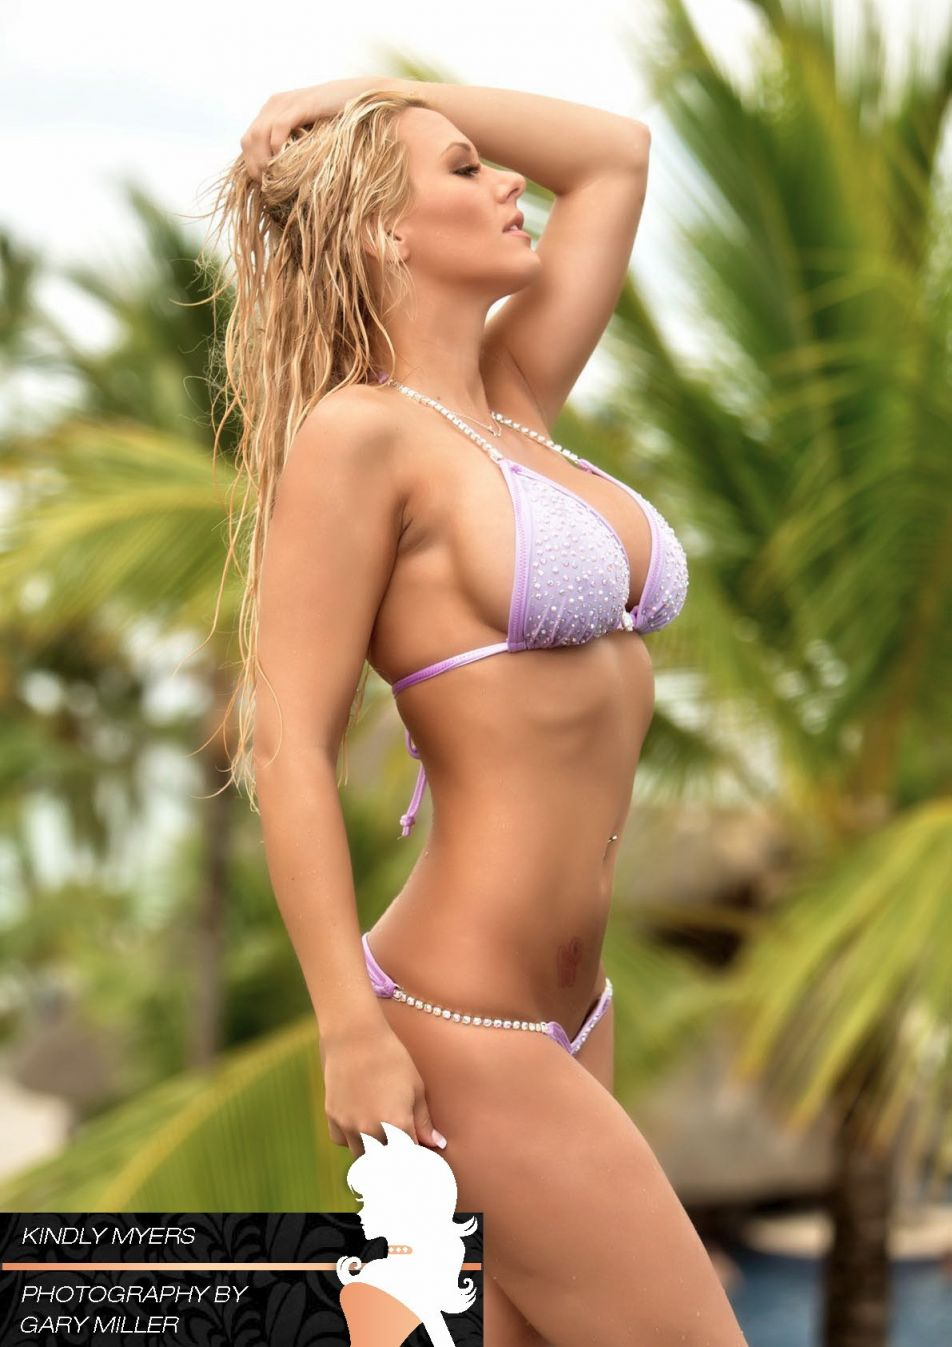 Kindly Myes bikini photoshoot  (1)